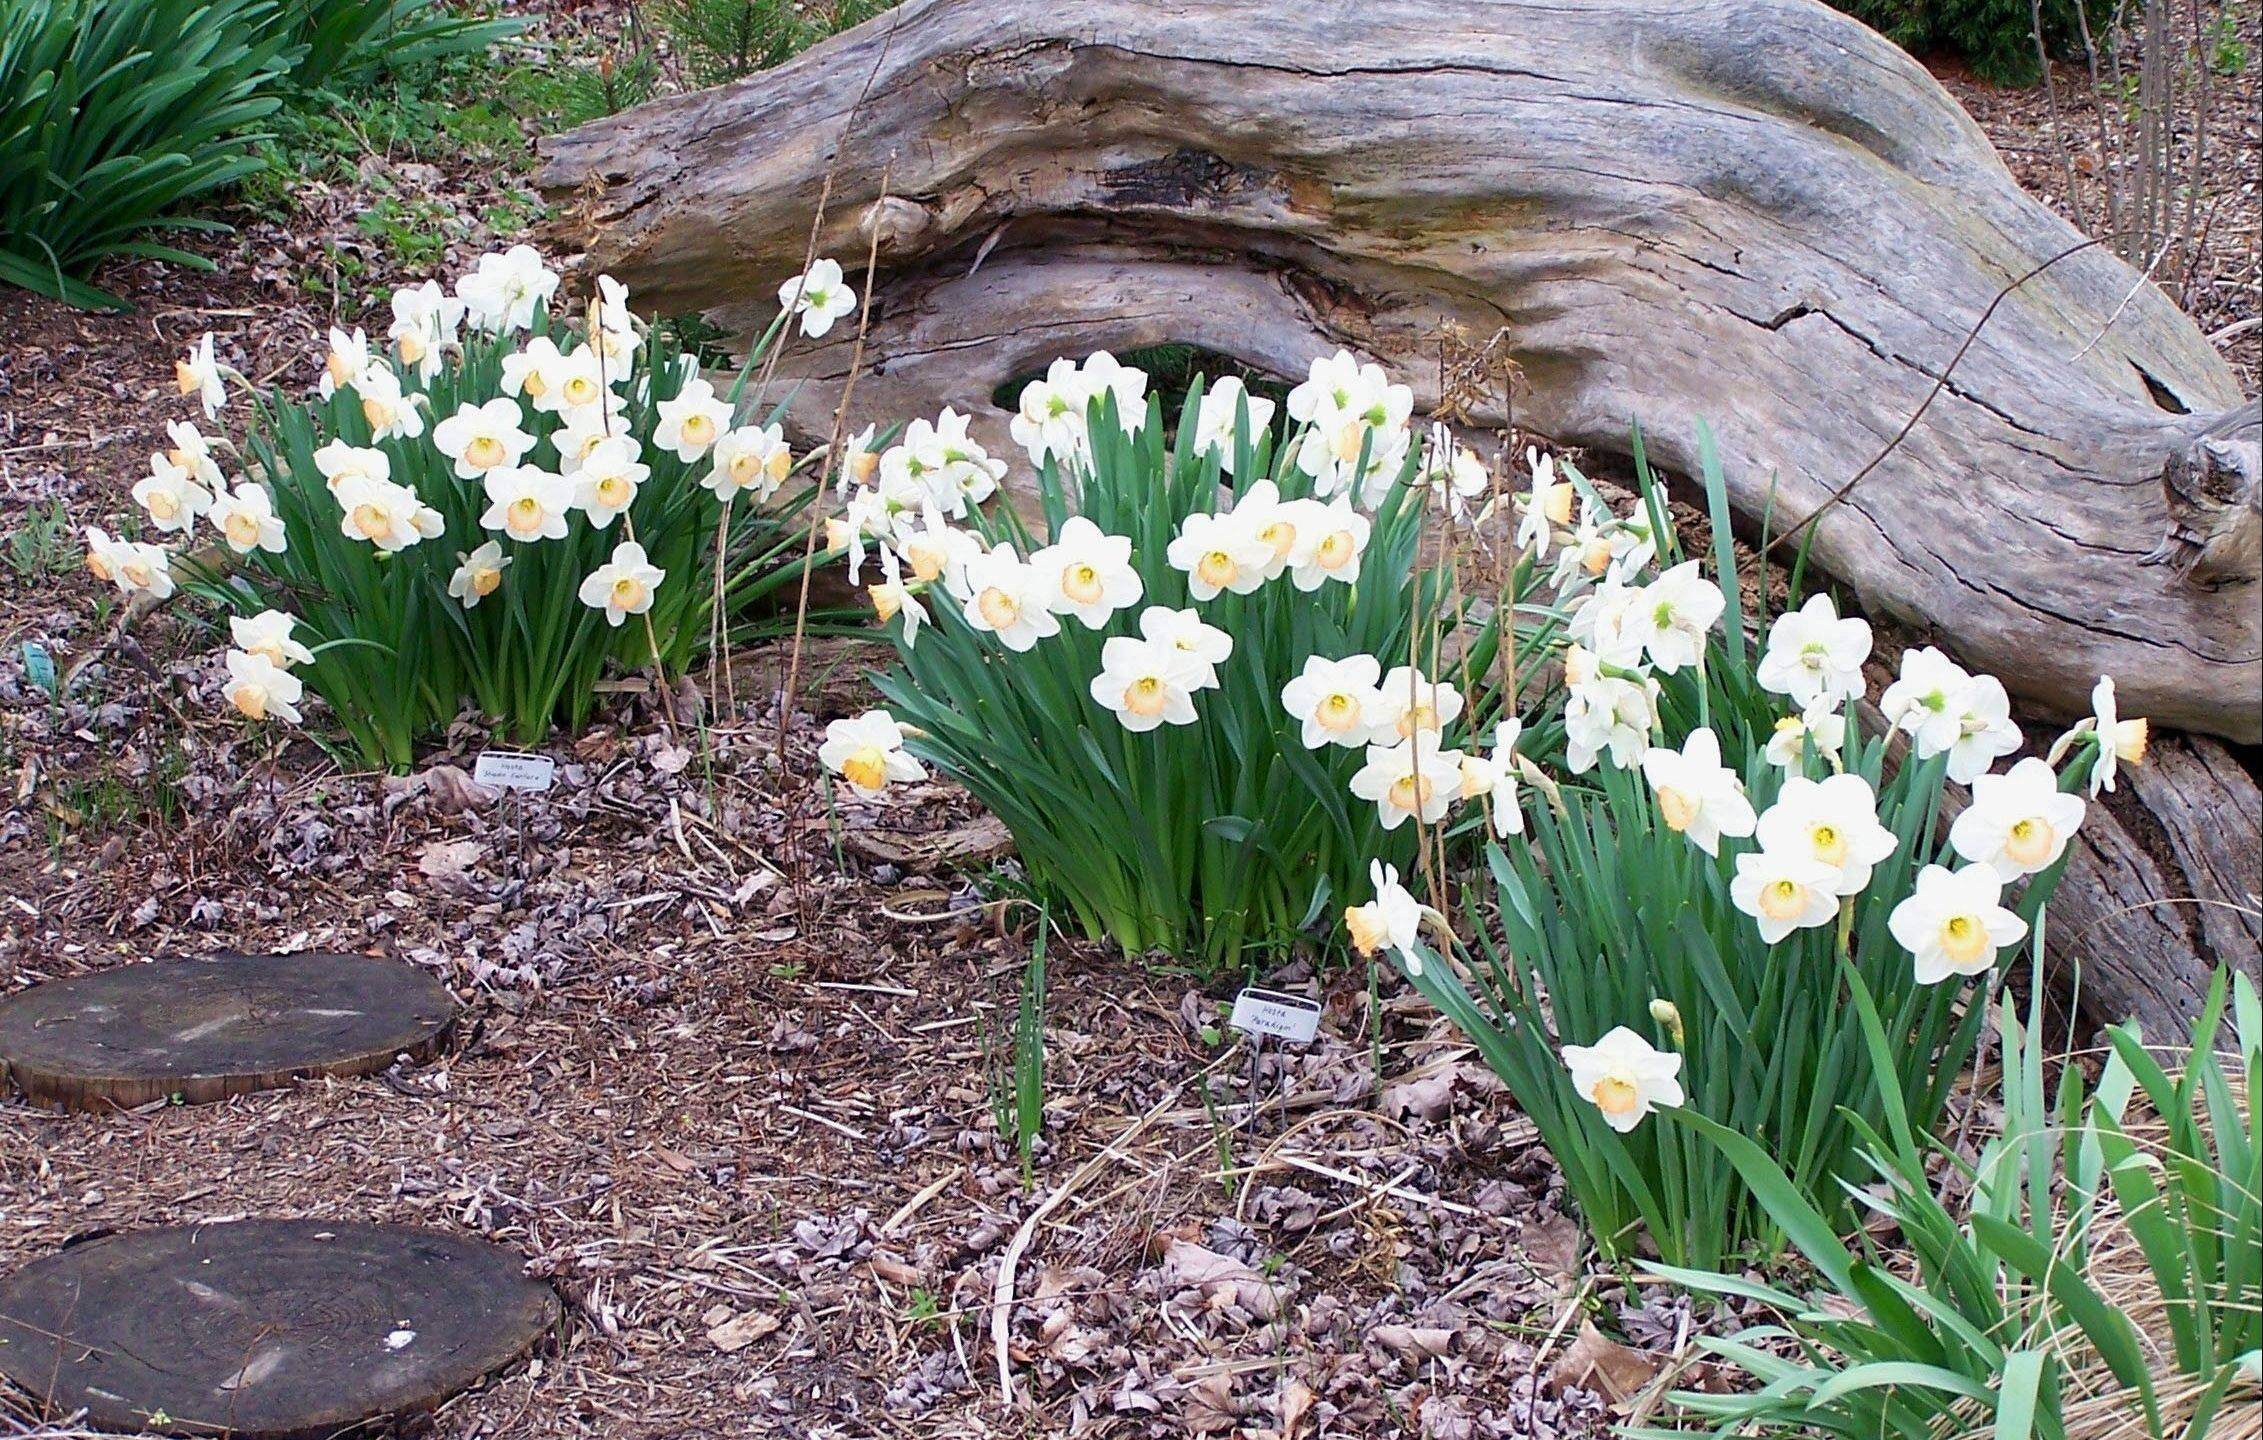 Bouquets of daffodils are planted between still-sleeping hostas.